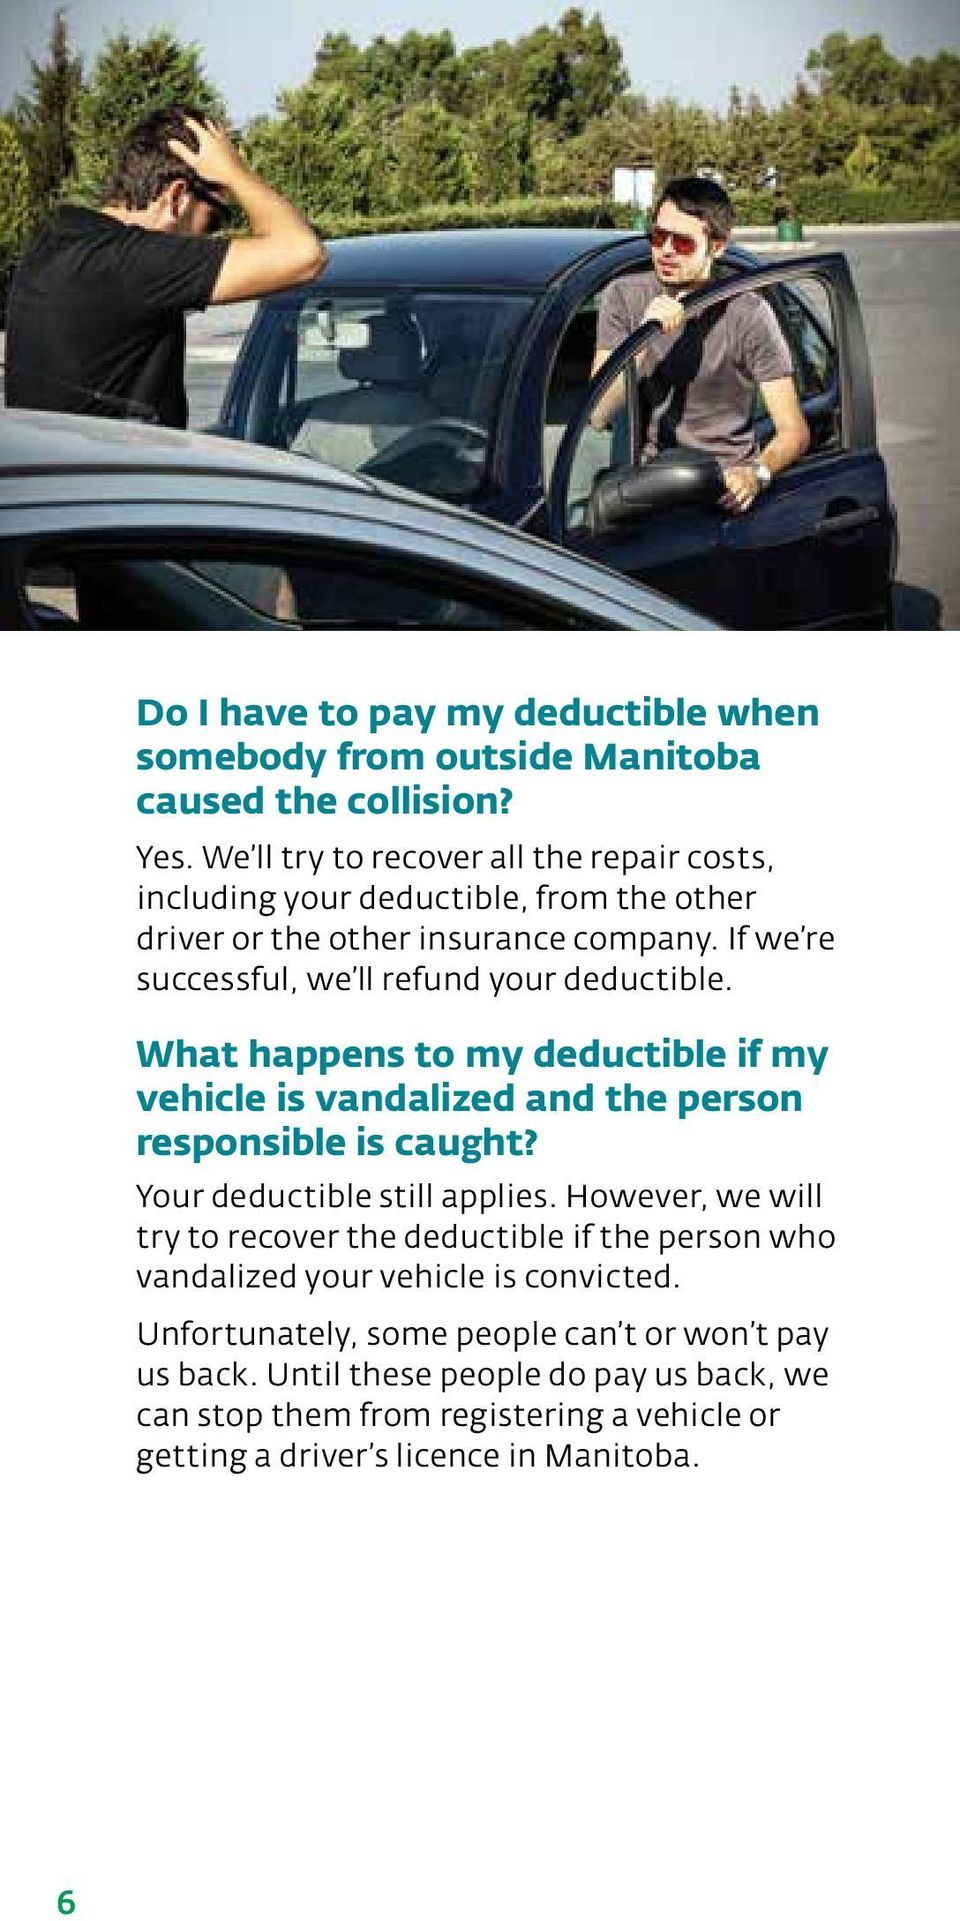 If we re successful, we ll refund your deductible. What happens to my deductible if my vehicle is vandalized and the person responsible is caught?